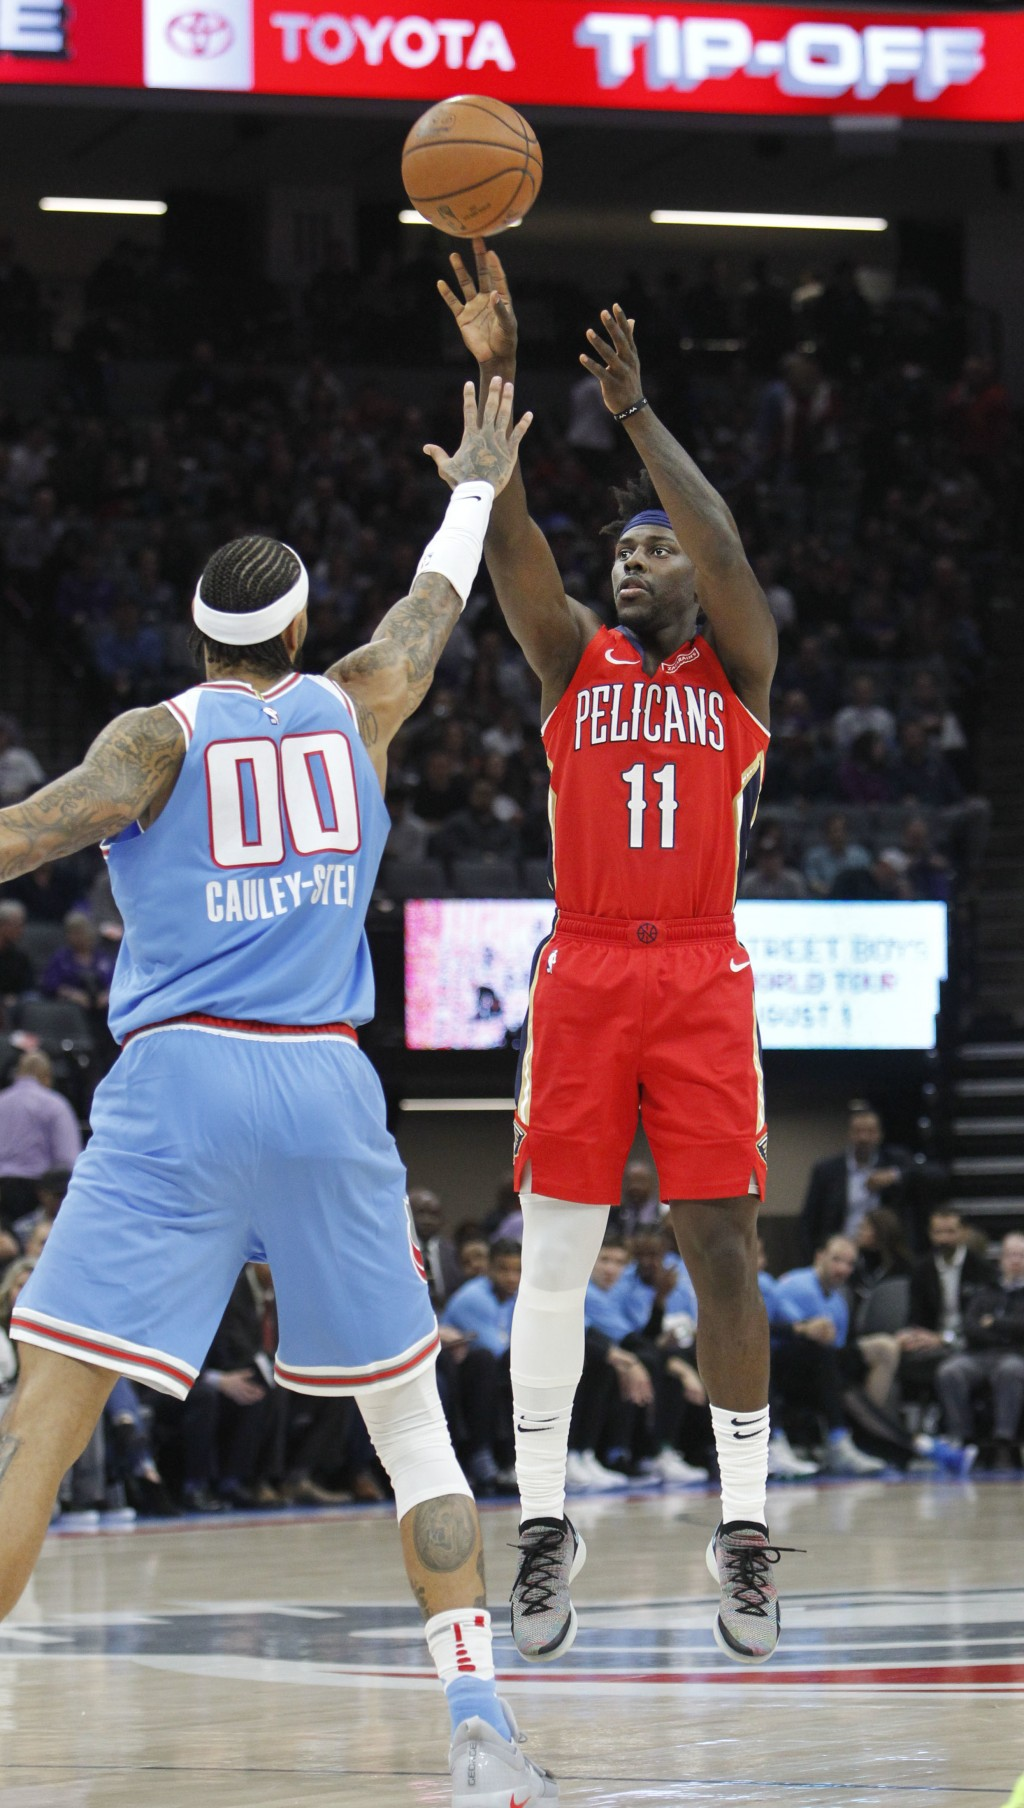 New Orleans Pelicans guard Jrue Holiday (11) shoots over Sacramento Kings center Willie Cauley-Stein (00) during the first half of an NBA basketball g